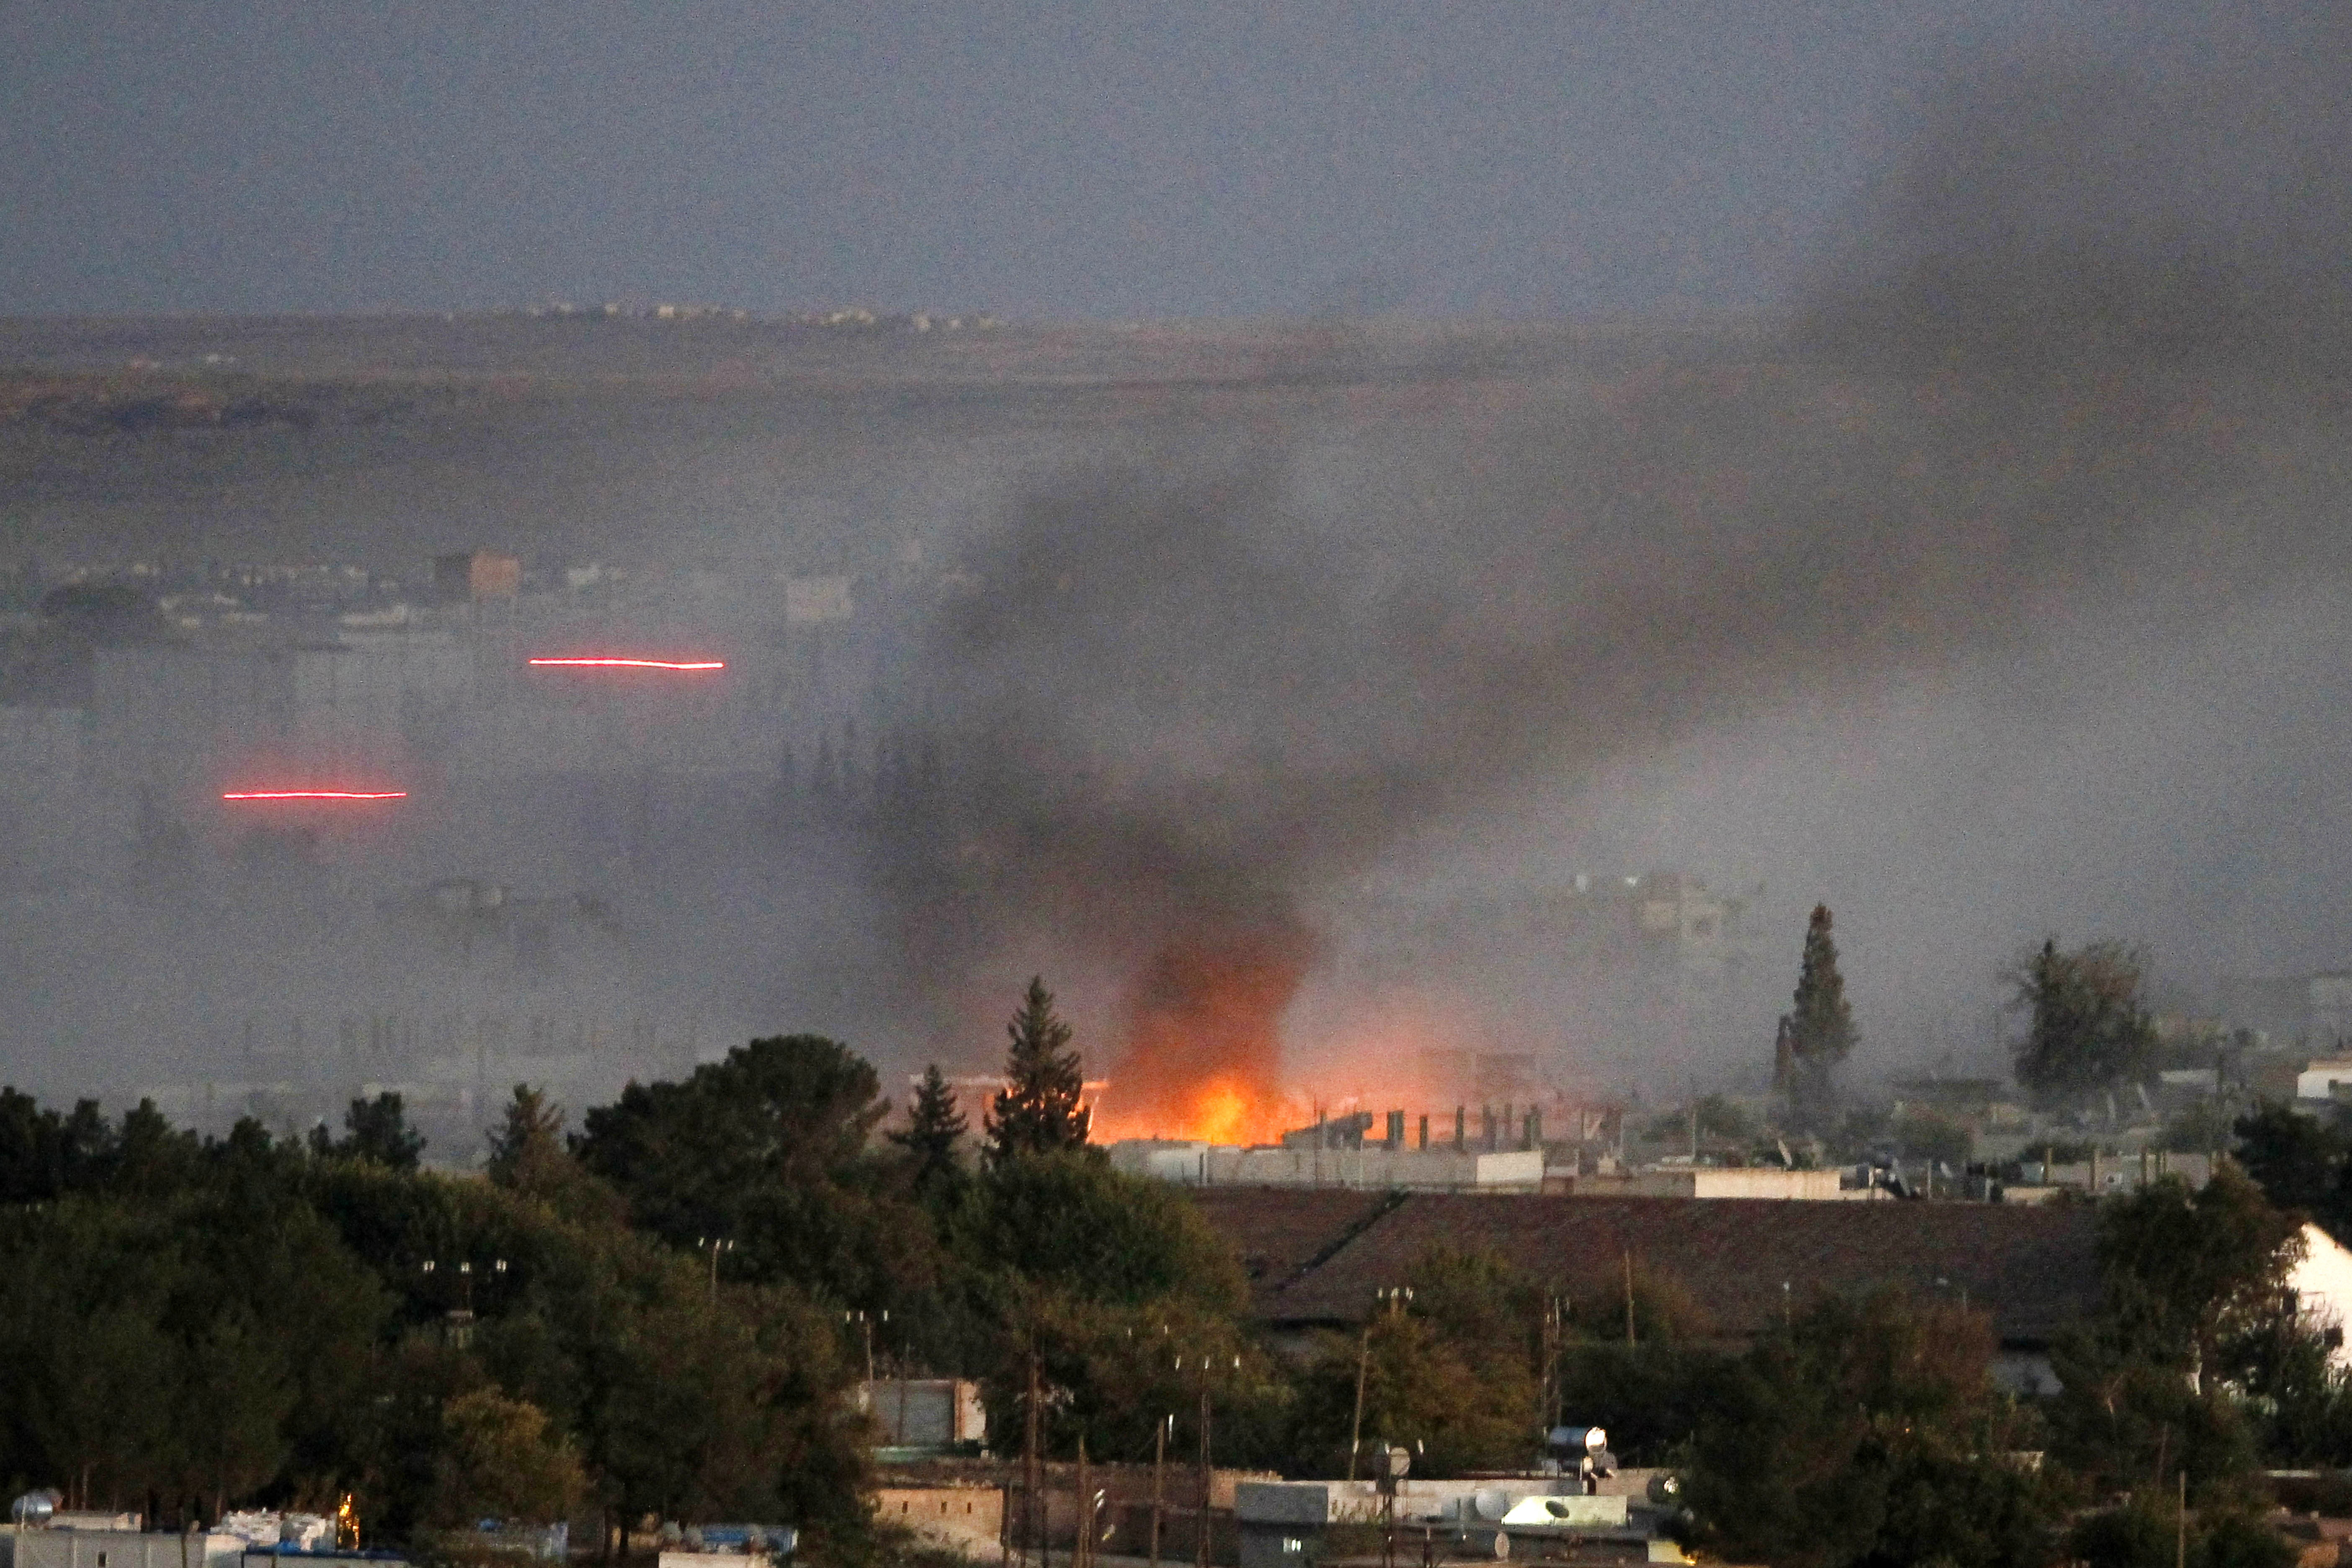 Smoke rises through the air after an explosion rocks Syrian city of Kobane  on October 20, 2014.